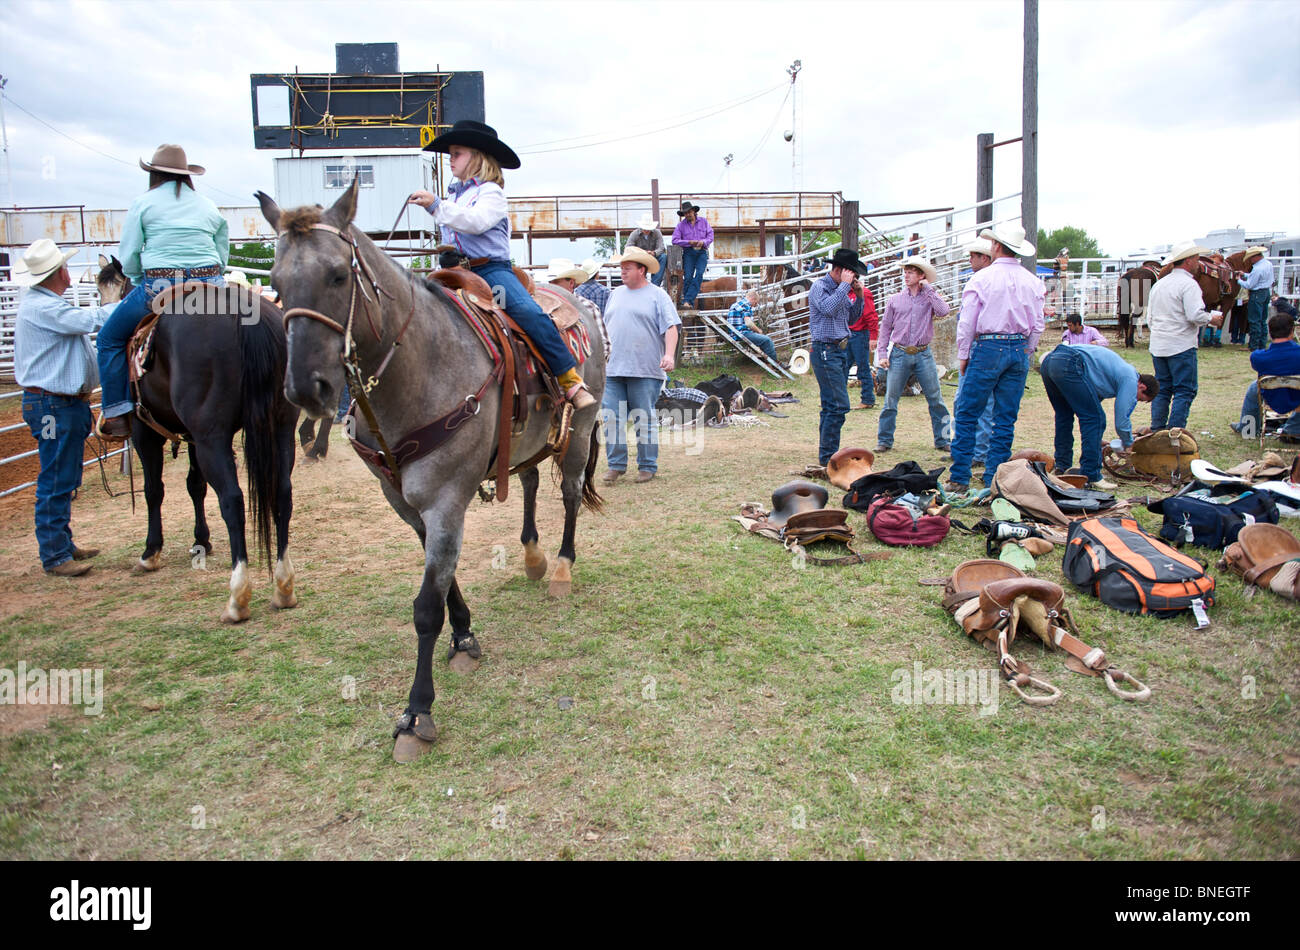 Cowgirl riding horse backstage at PRCA rodeo event in smalltown Bridgeport, Texas, USA Stock Photo